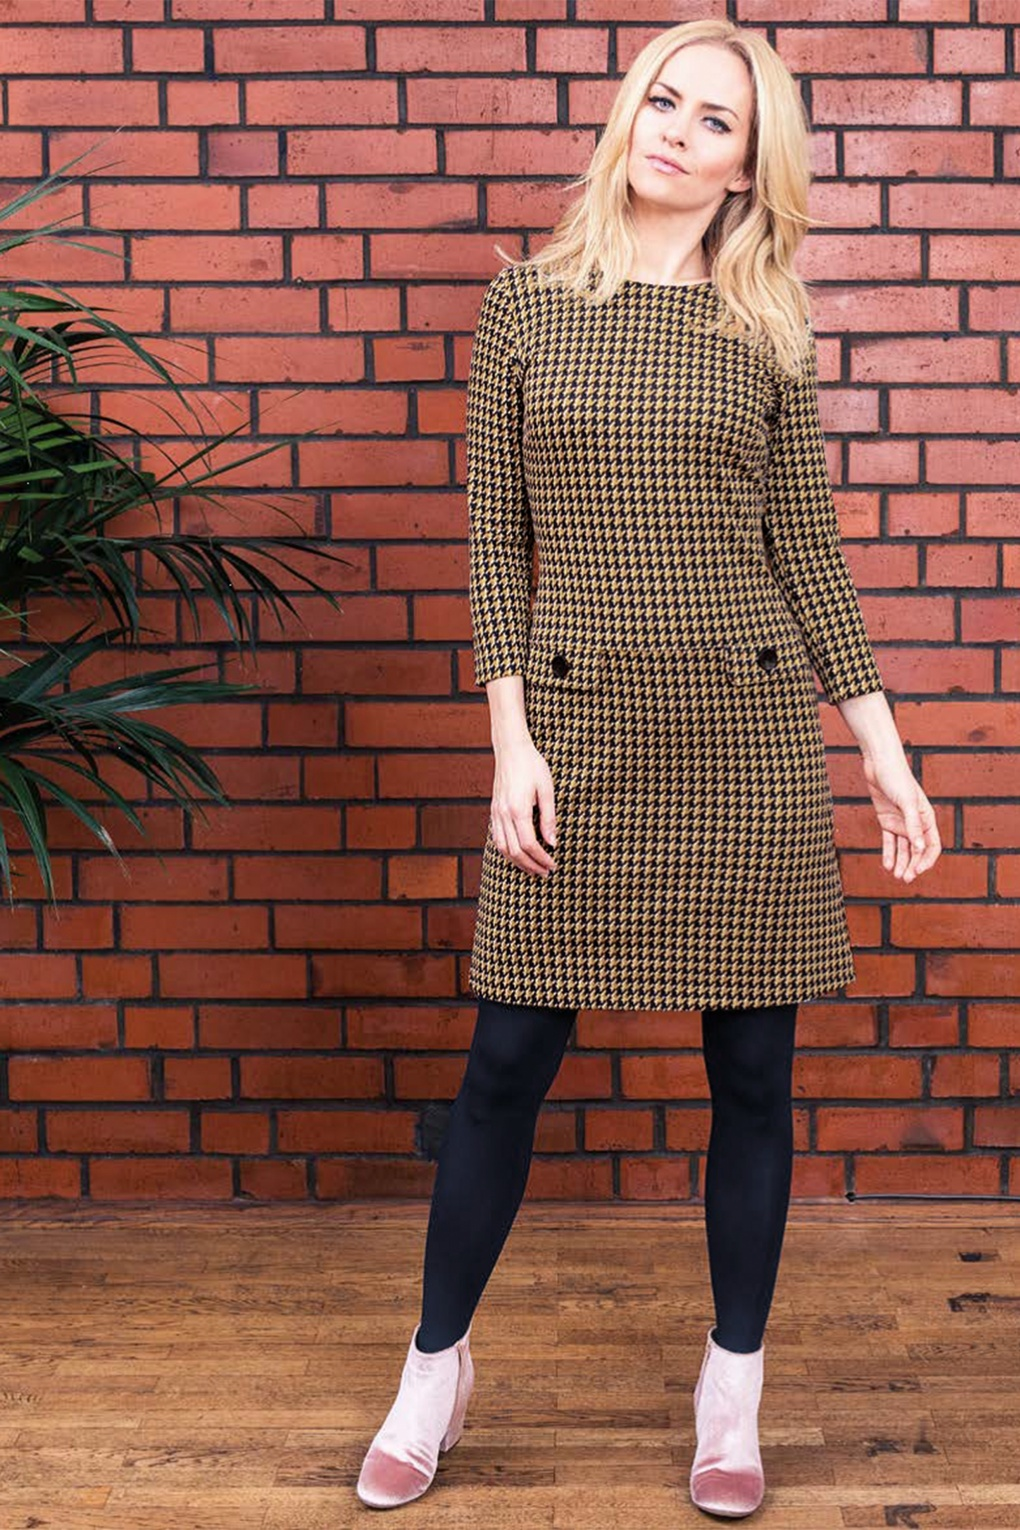 1960s Style Dresses, Clothing, Shoes UK 60s Nine To Five Jacquard Houndstooth Dress in Mustard £53.98 AT vintagedancer.com